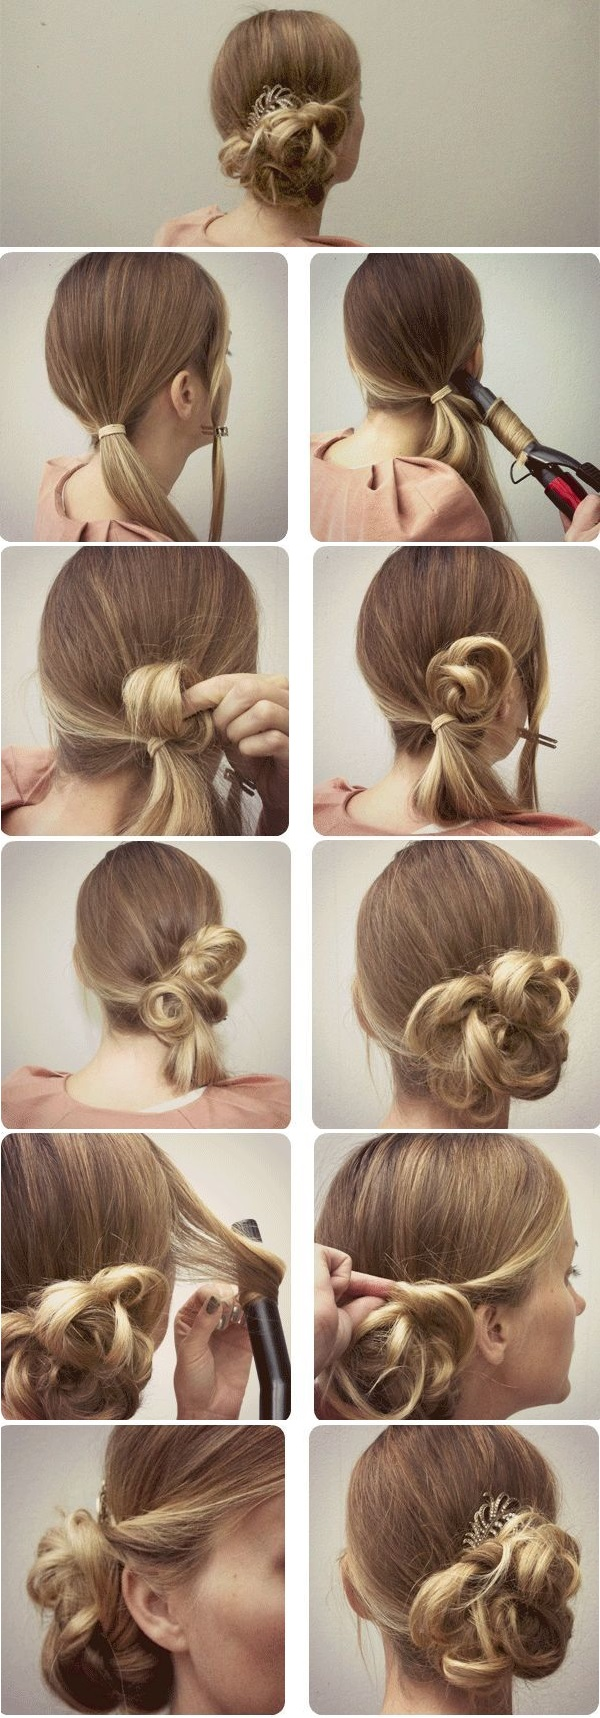 Romantic Formal Updo For Special Occasions Alldaychic